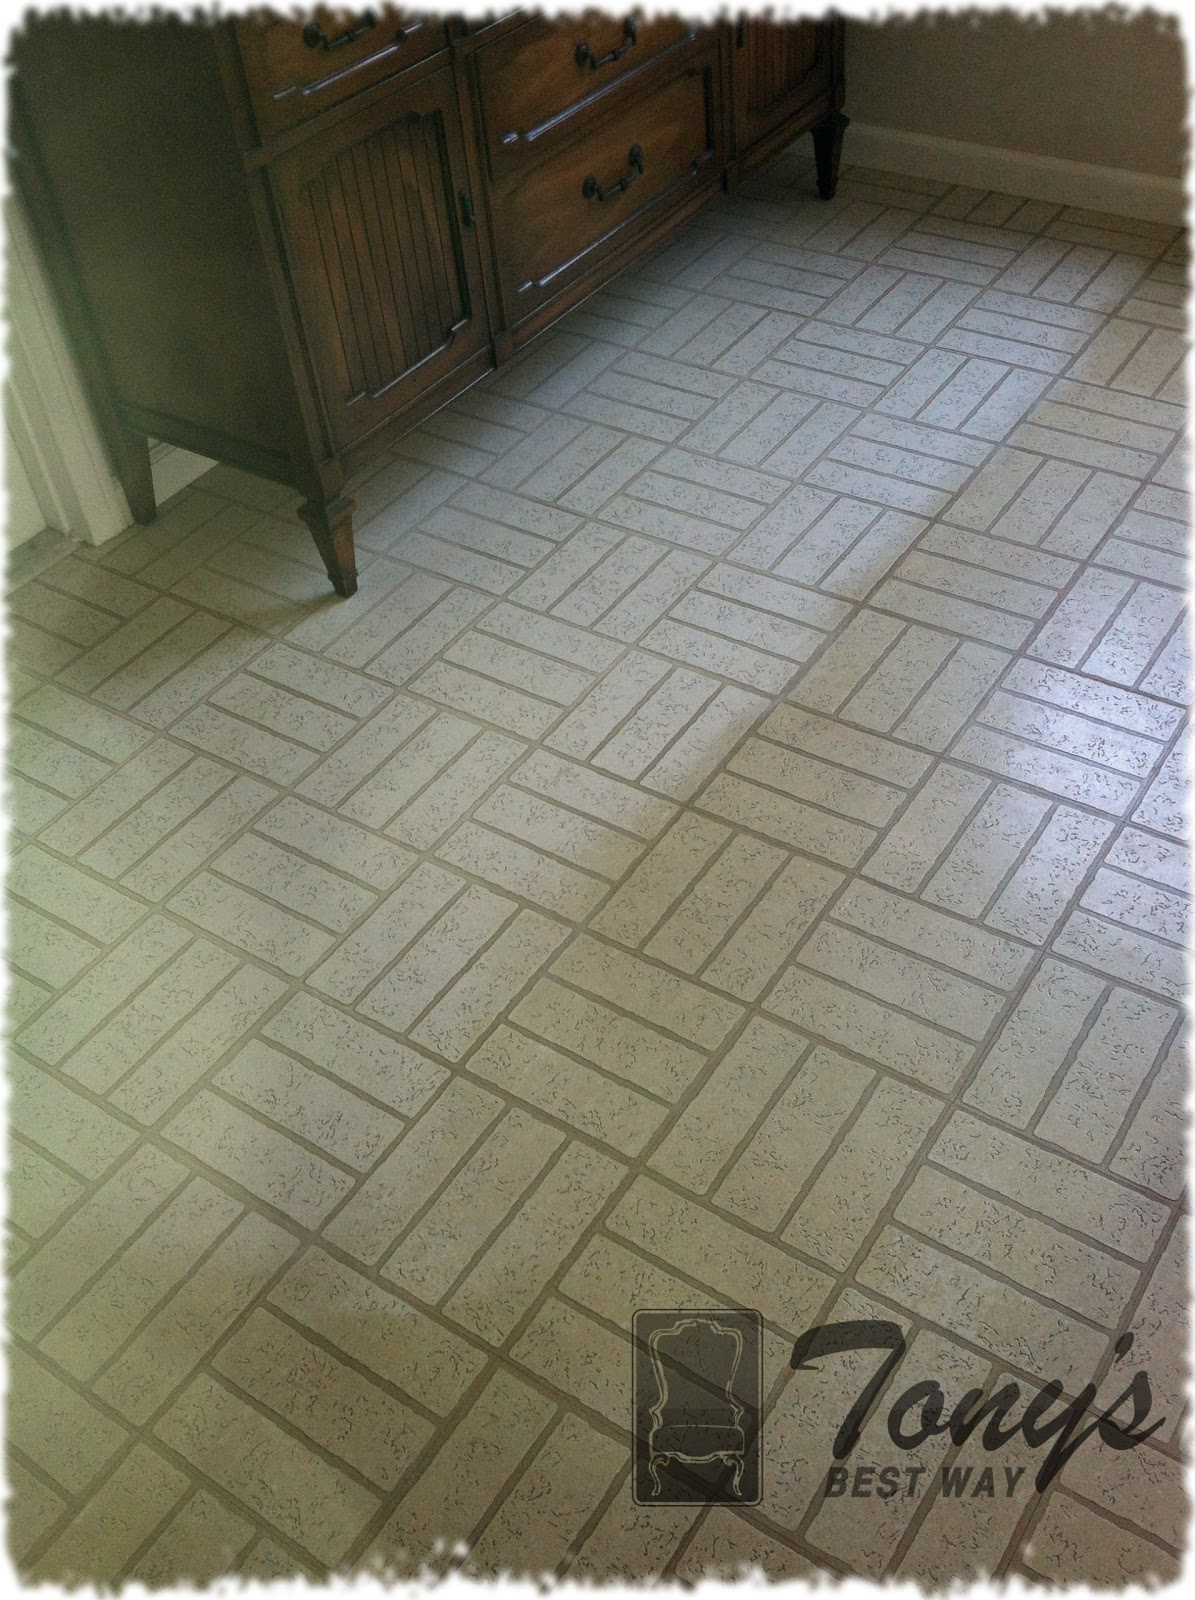 Yearold Vinyl Floor Gets Cleaning Facelift Photos Video - Best product to clean linoleum floors